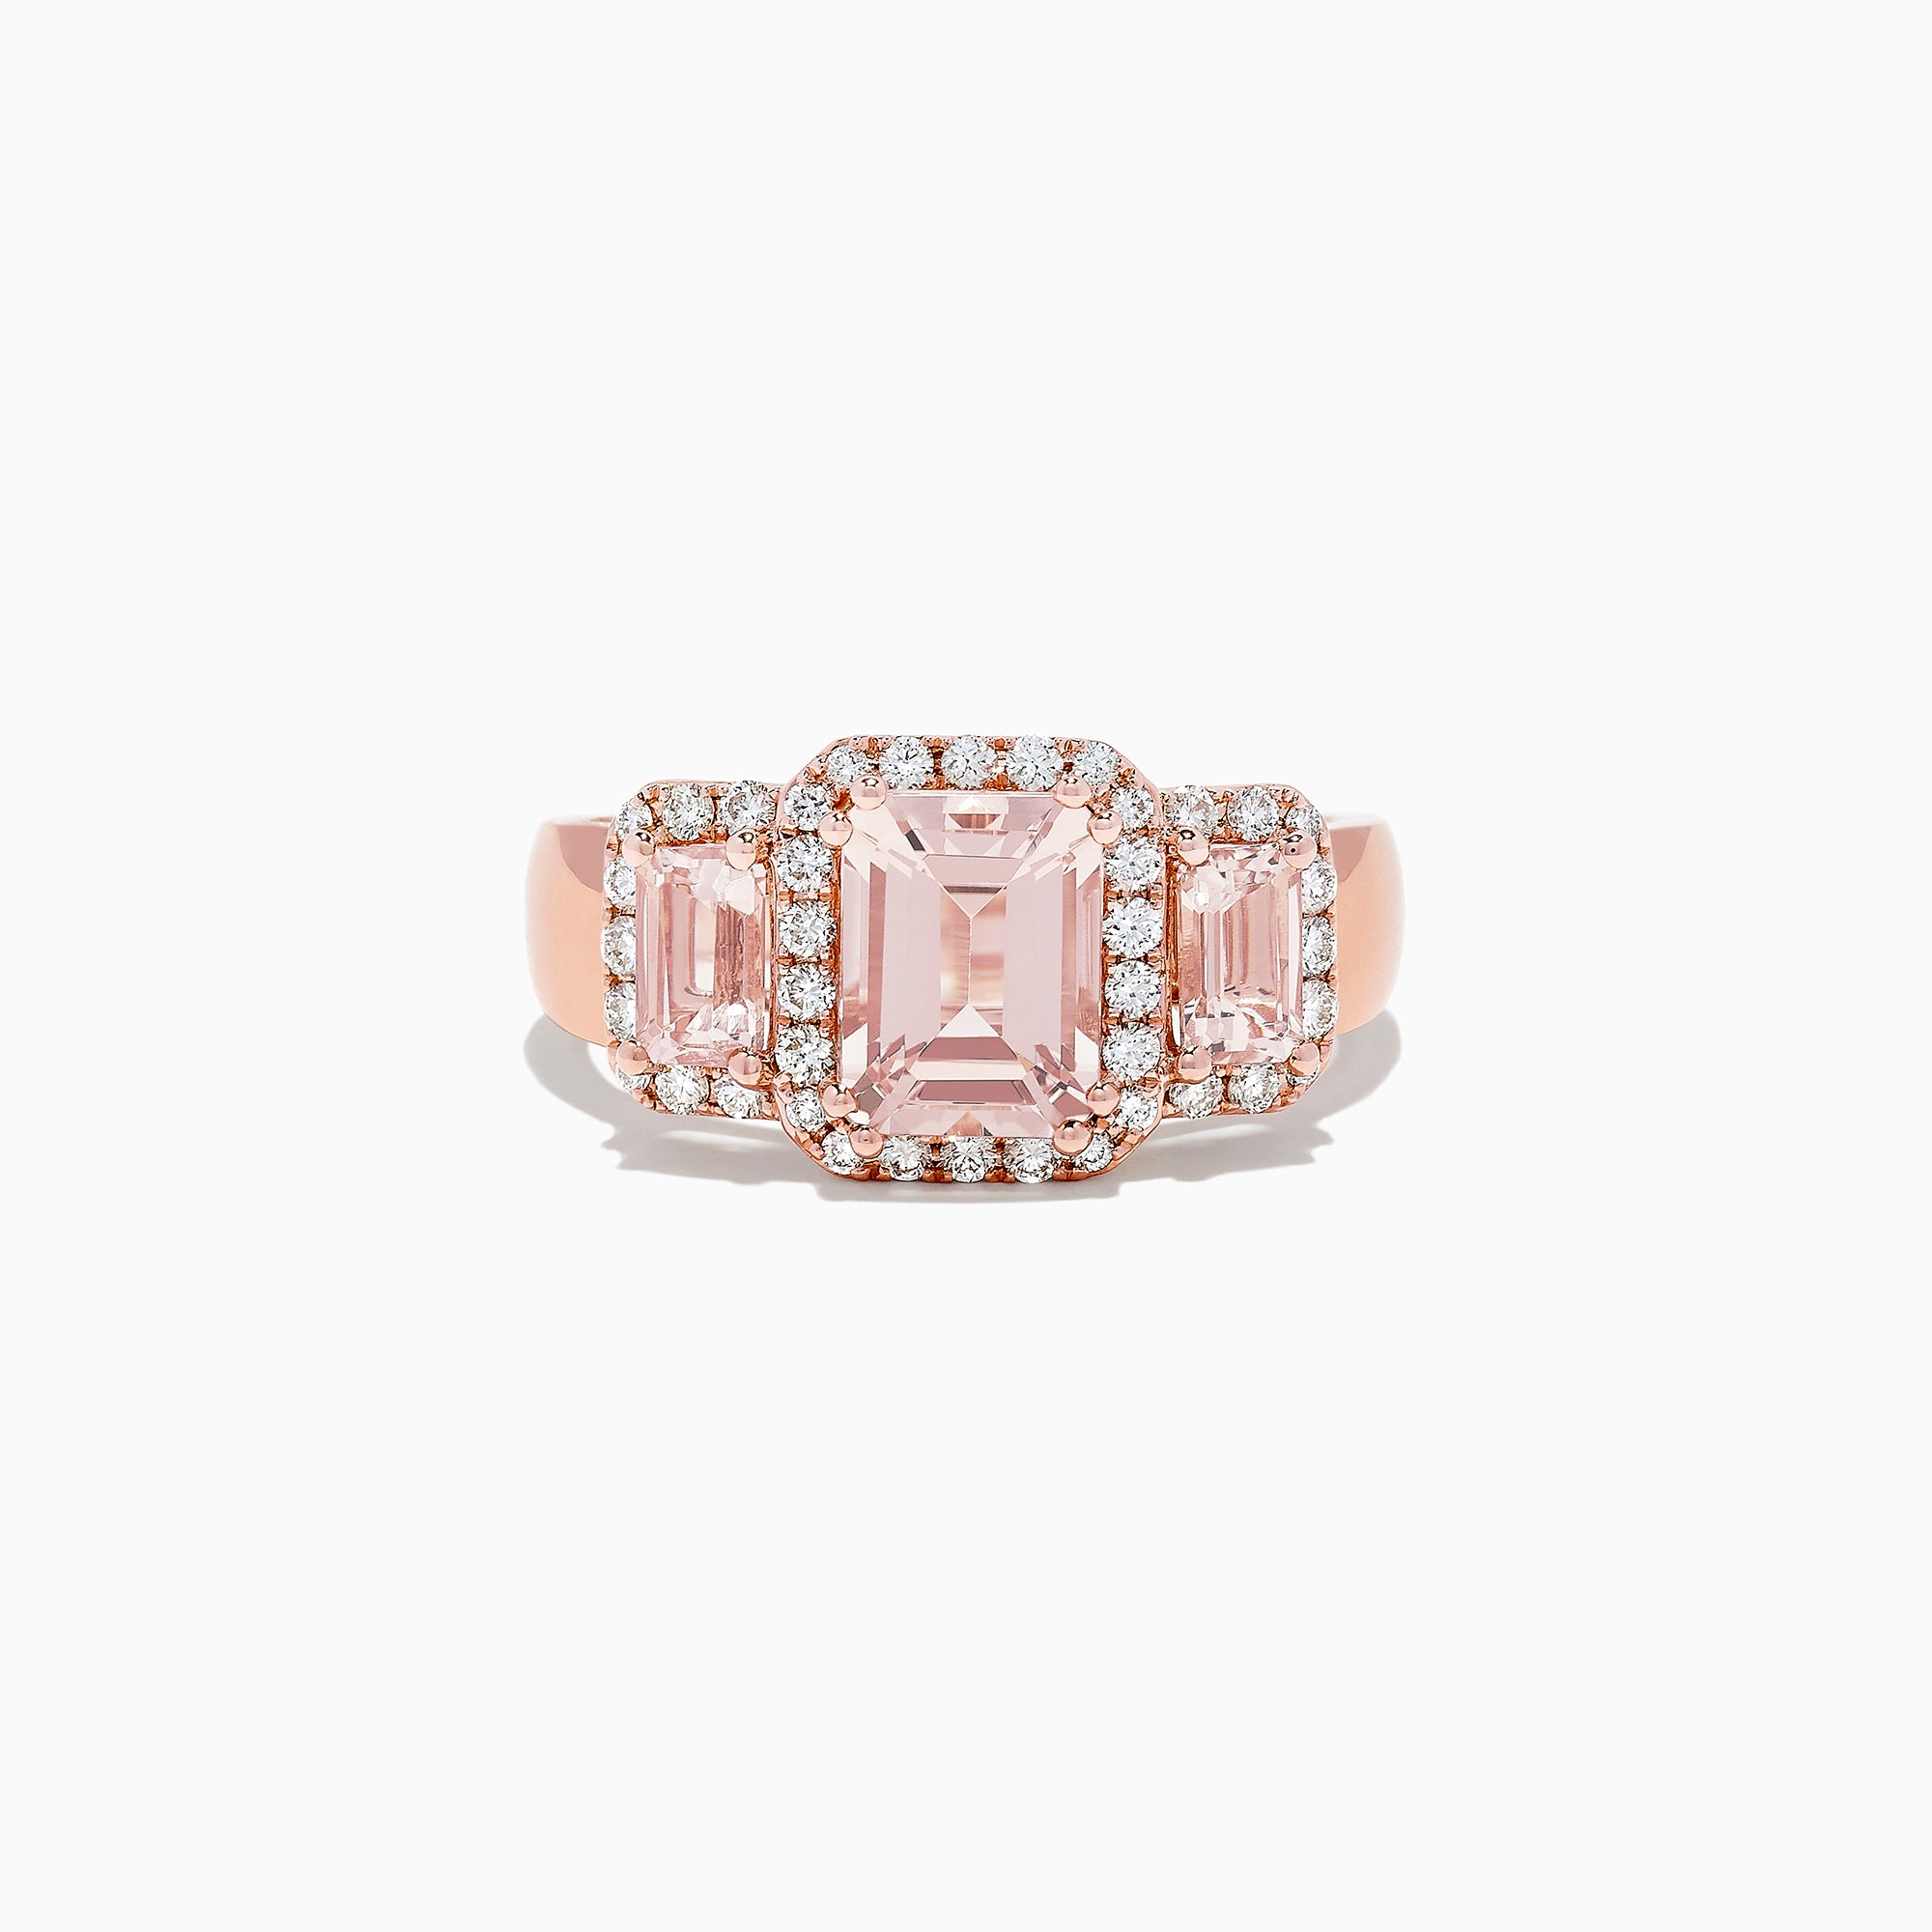 Effy Blush 14K Rose Gold Morganite and Diamond Ring, 2.53 TCW